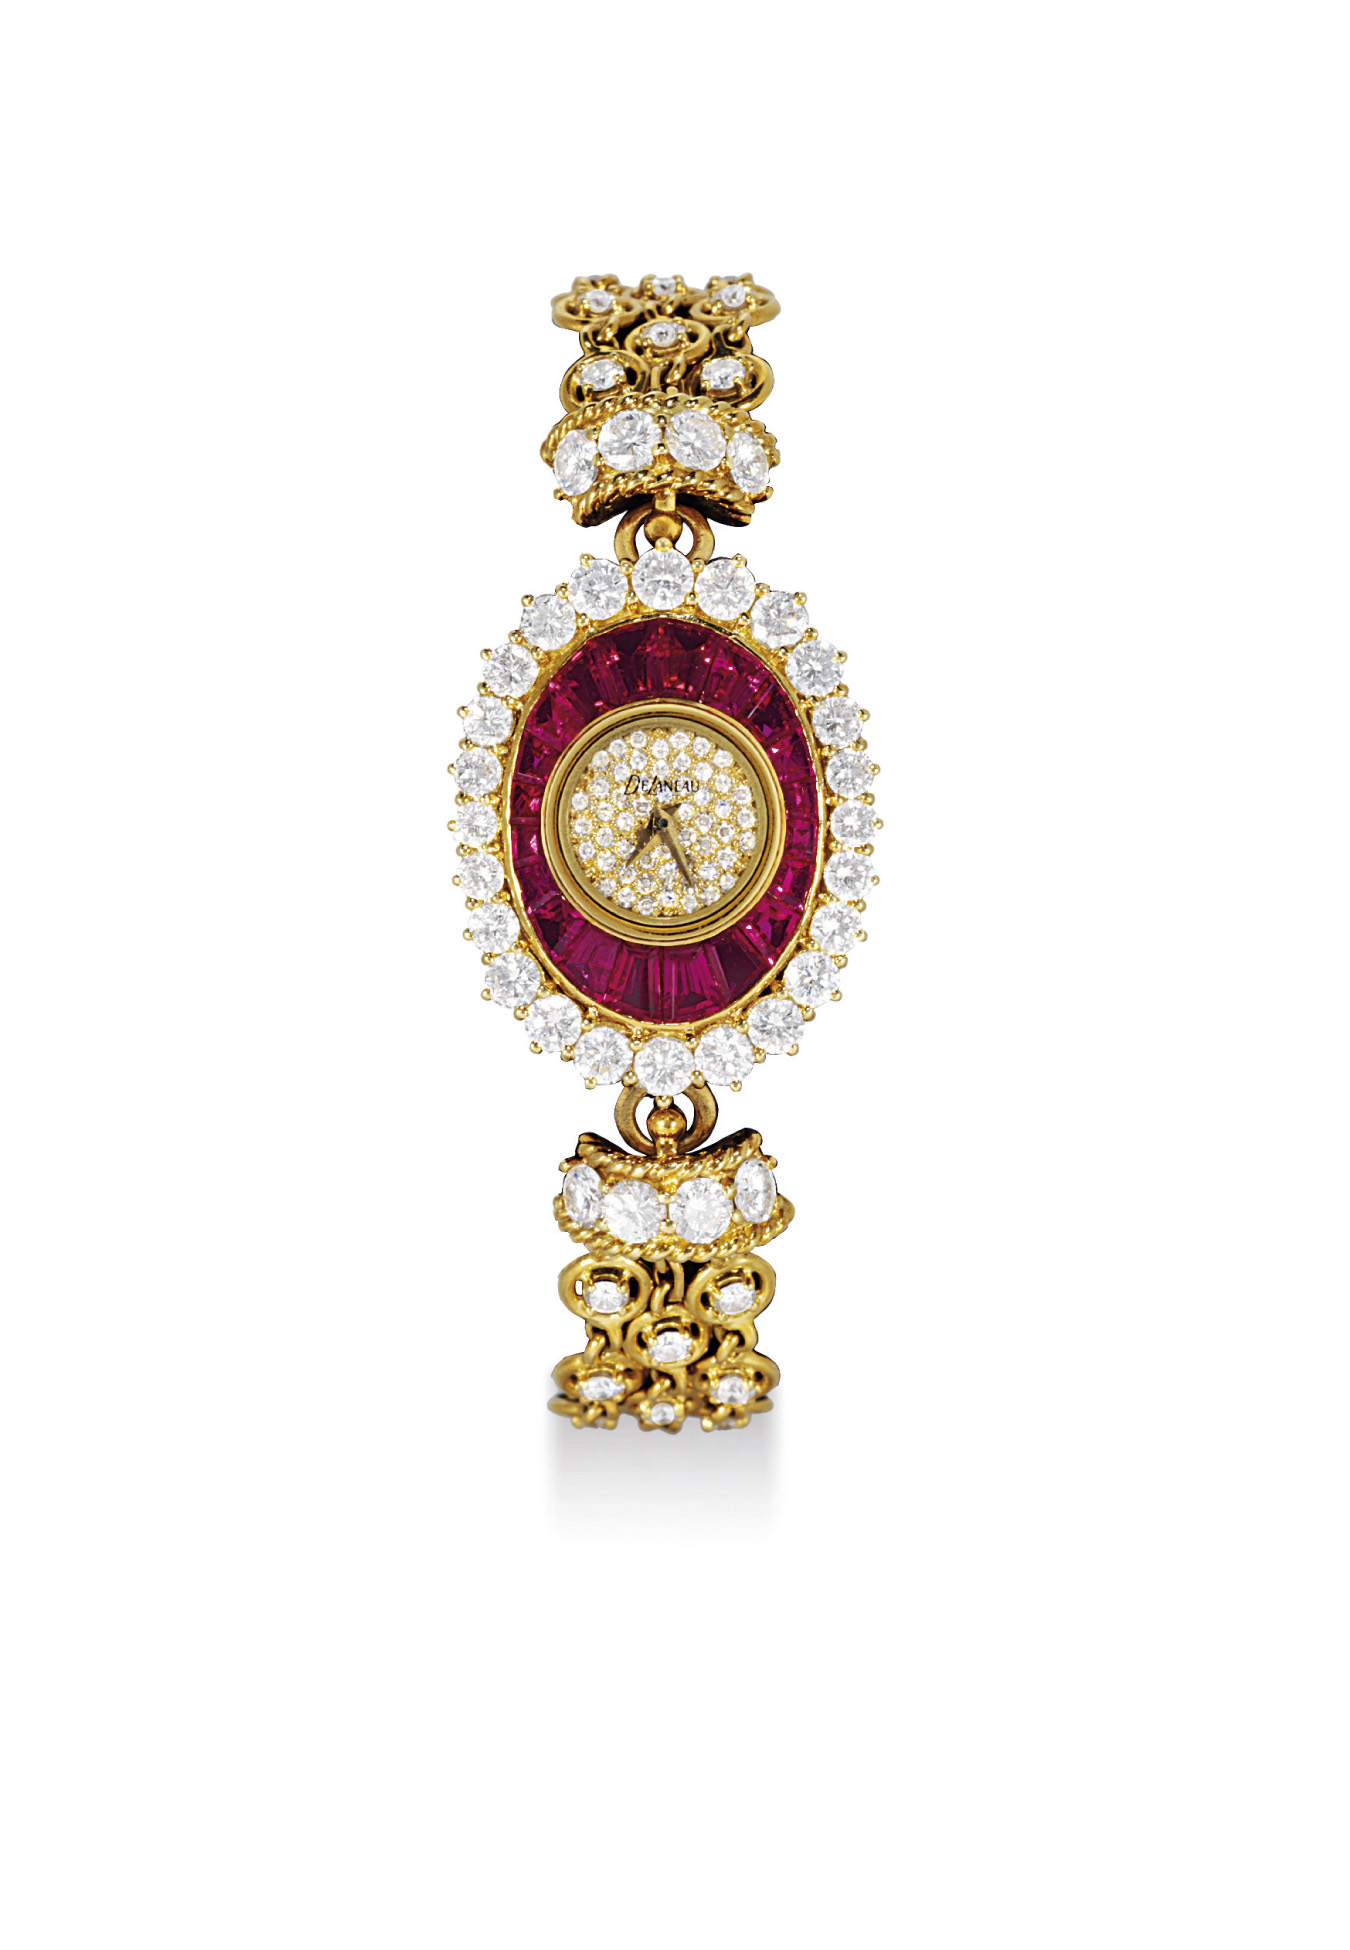 DELANEAU. A LADY'S FINE 18K GOLD, RUBY AND DIAMOND-SET OVAL BRACELET WATCH